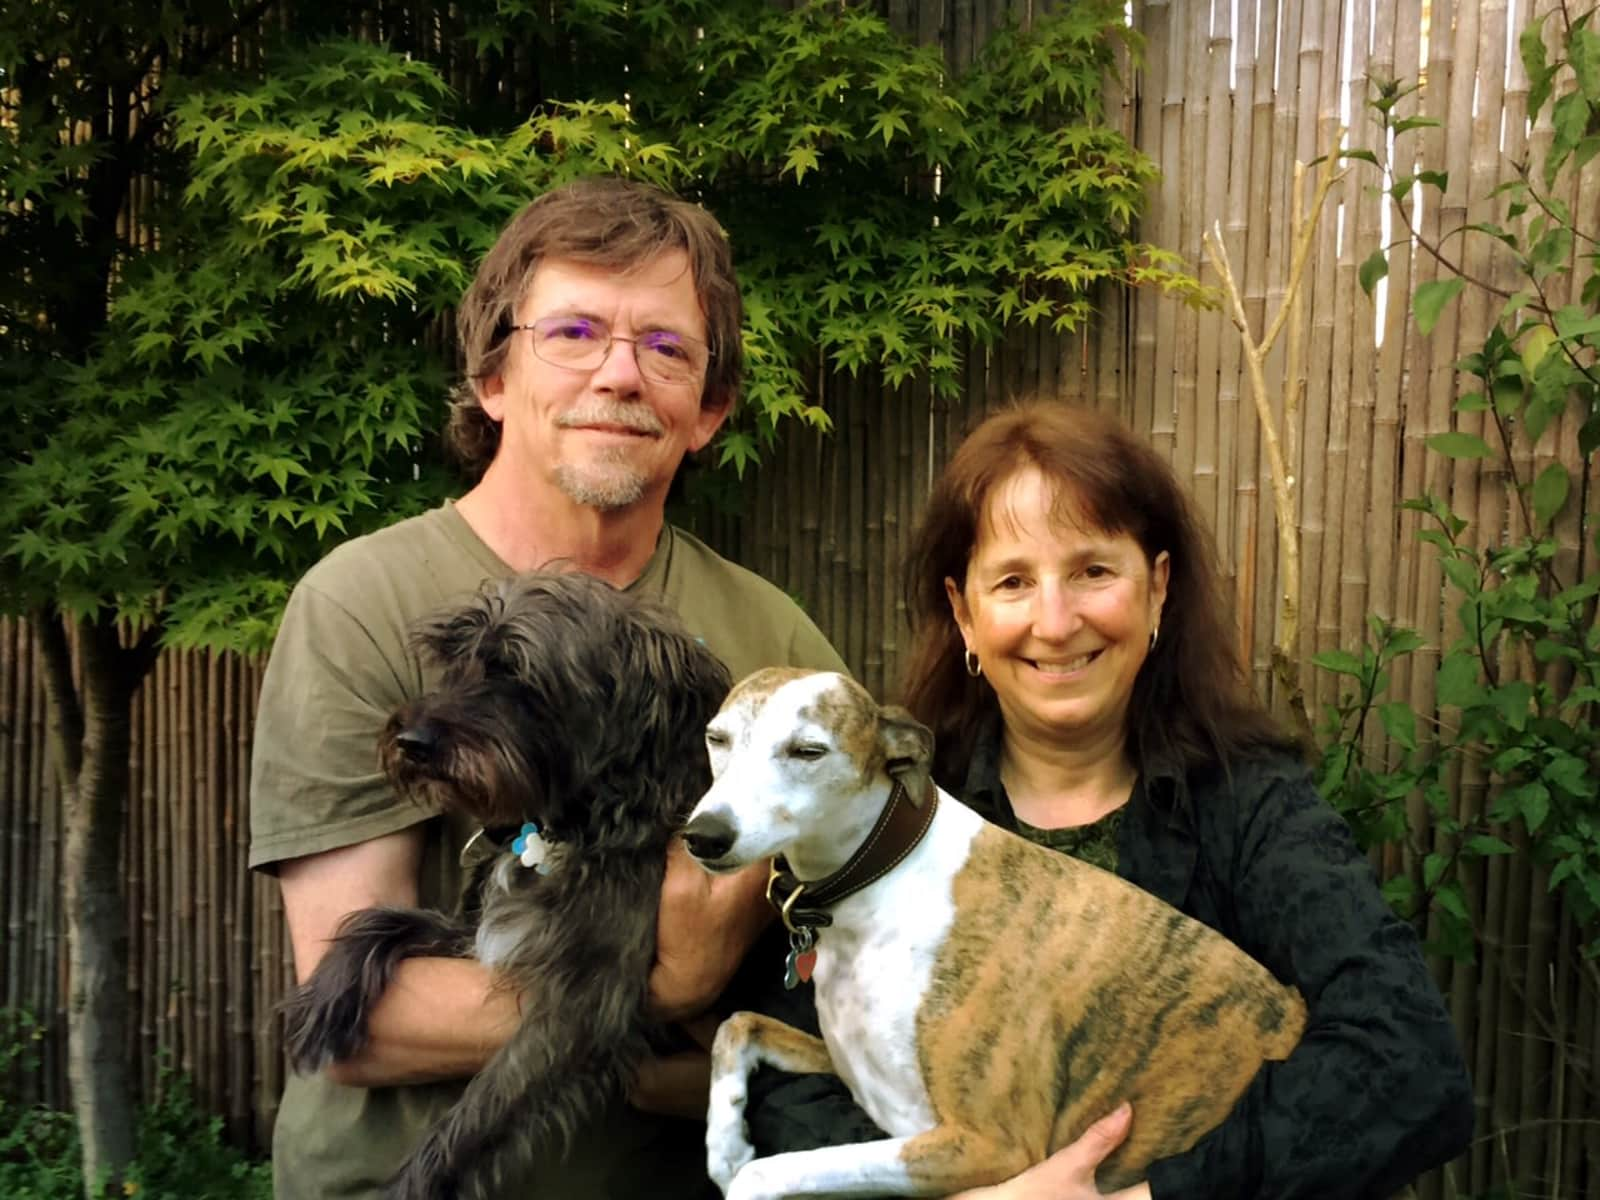 Mare & Steve from El Cerrito, California, United States